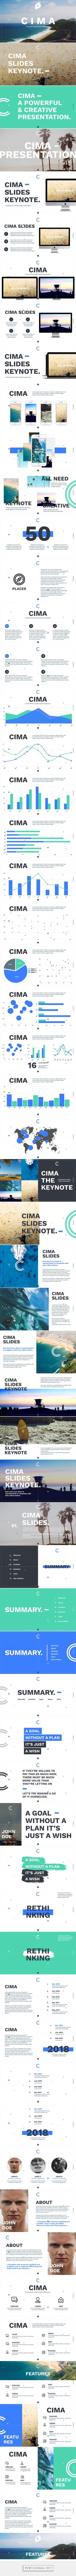 Cima Slides, creative presentation available for PPT, Keynote & Google. - created via https://pinthemall.net